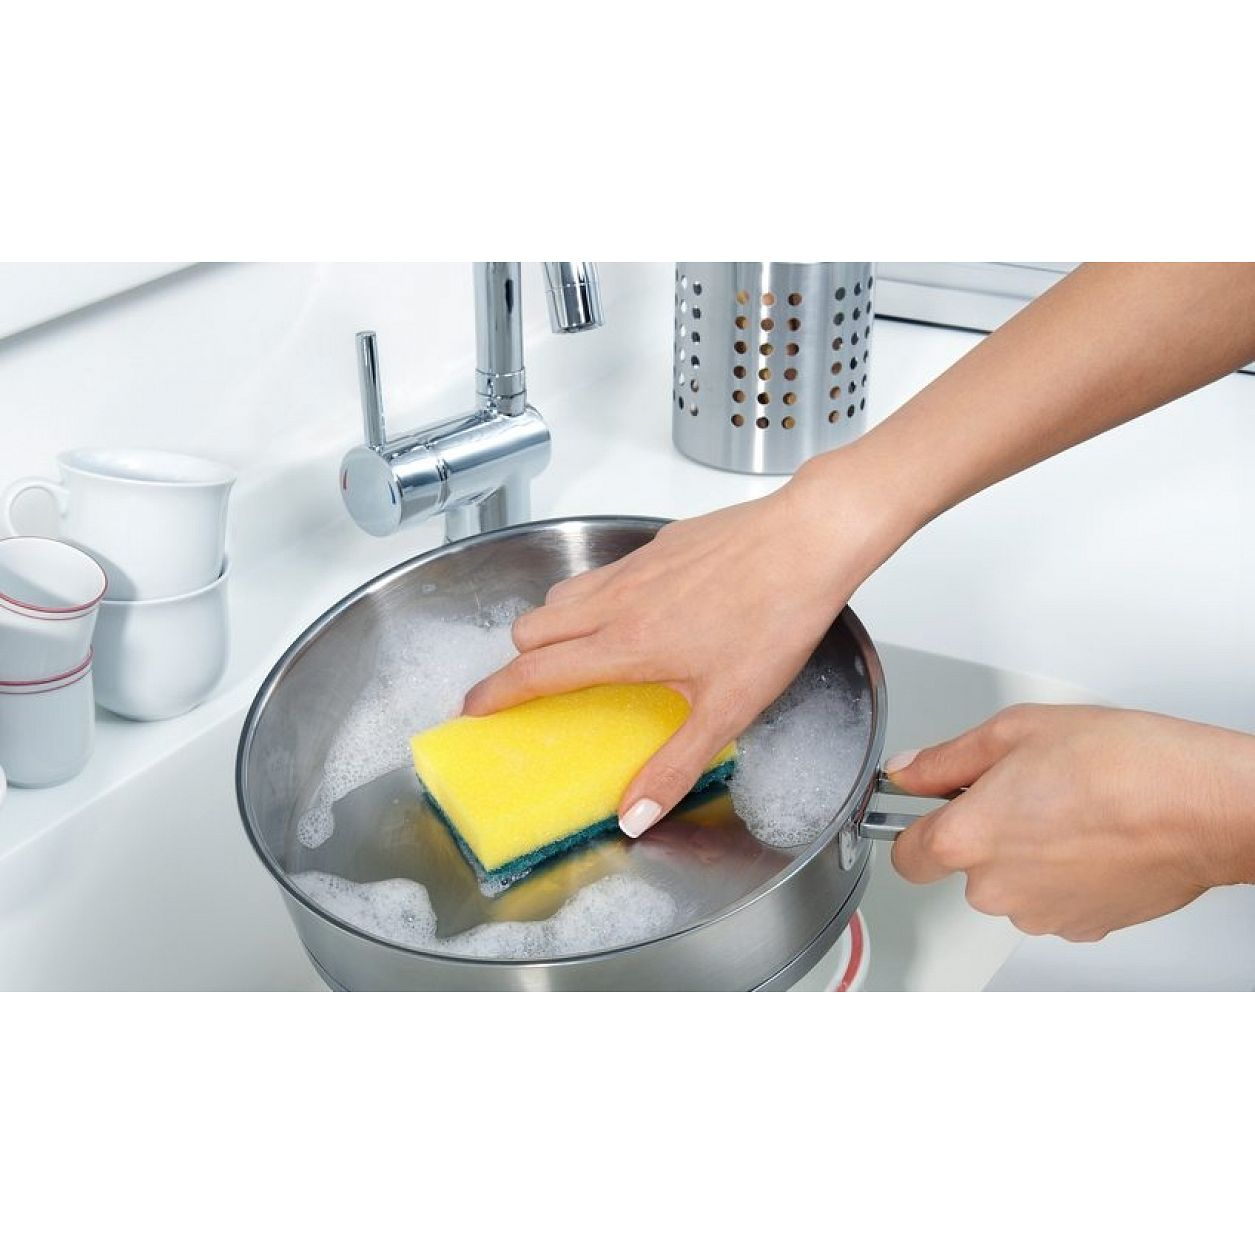 Cleaning sponges LABICO